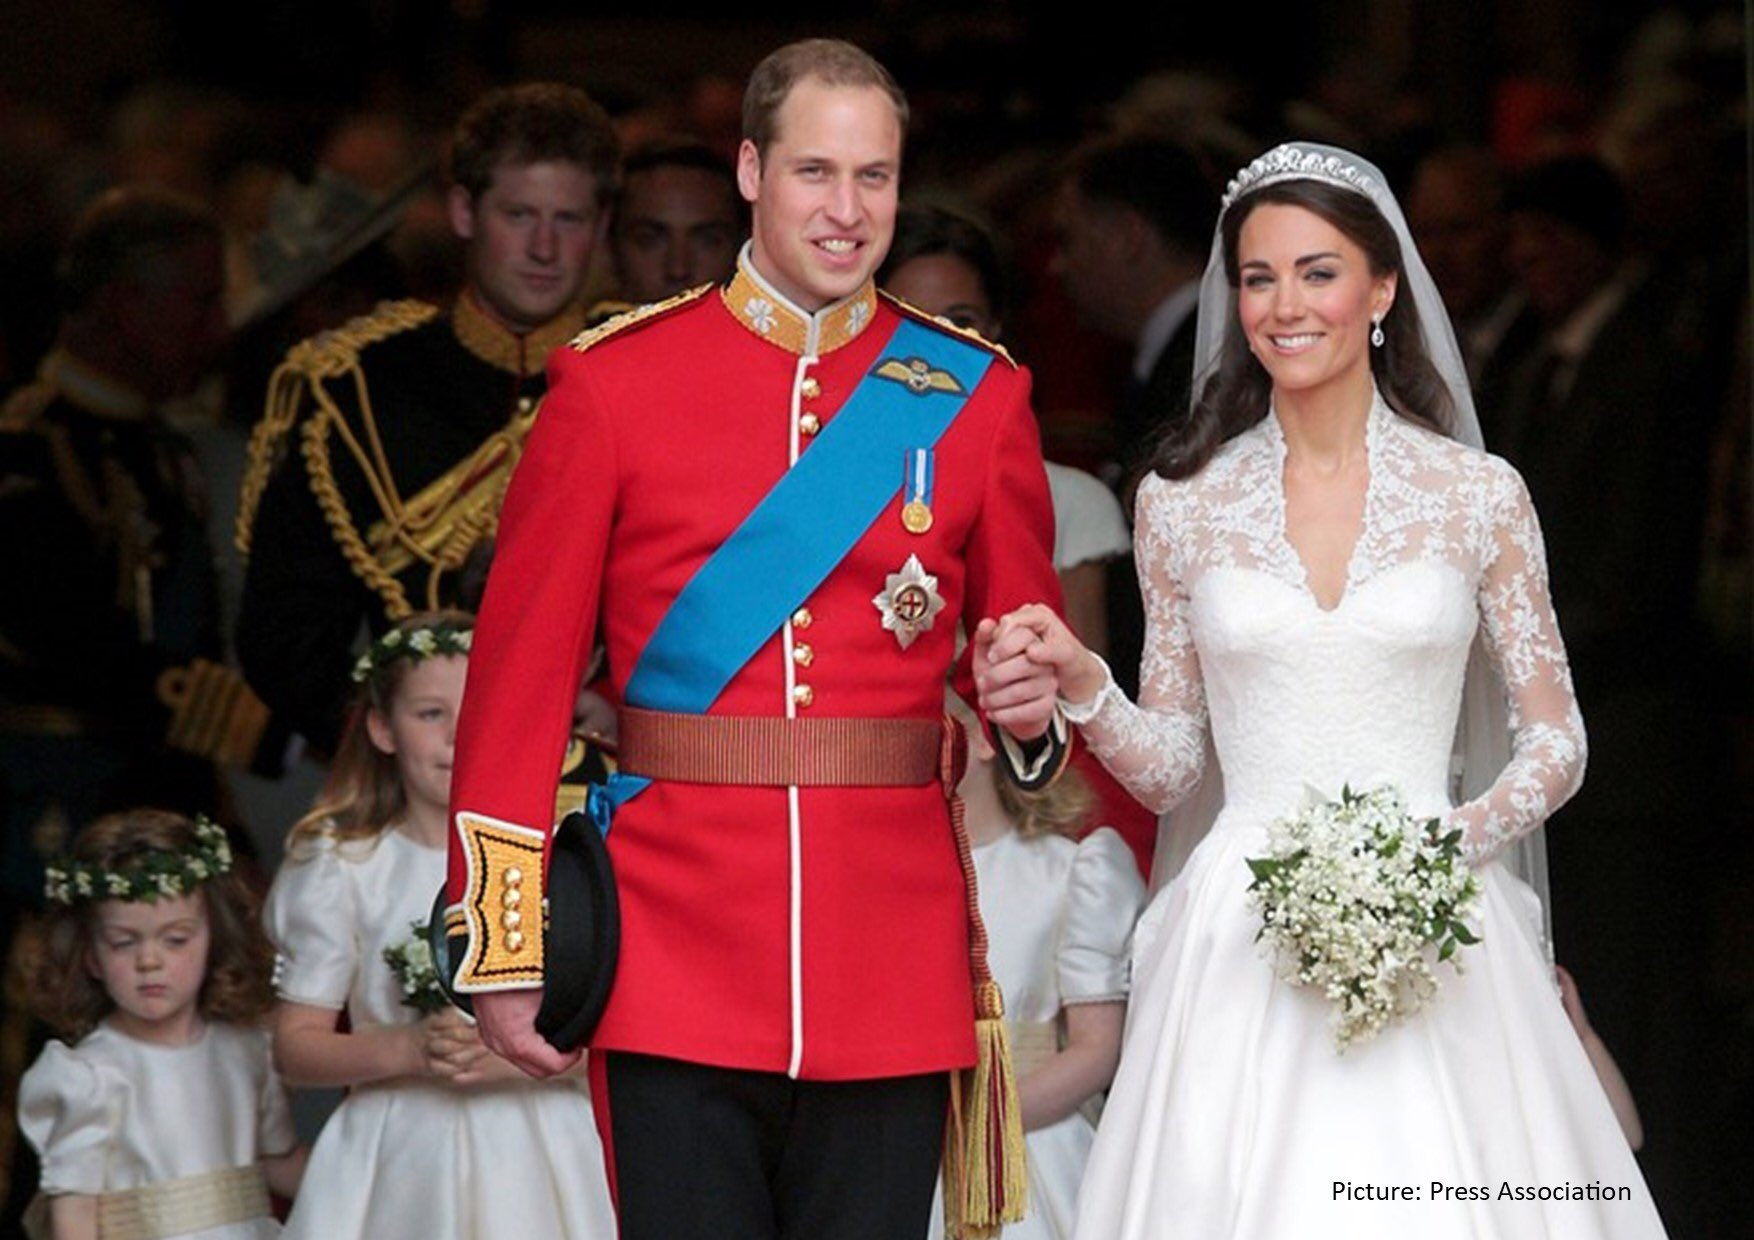 The Duke and Duchess of Cambridge will be marking their 10th Wedding anniversary this Thursday